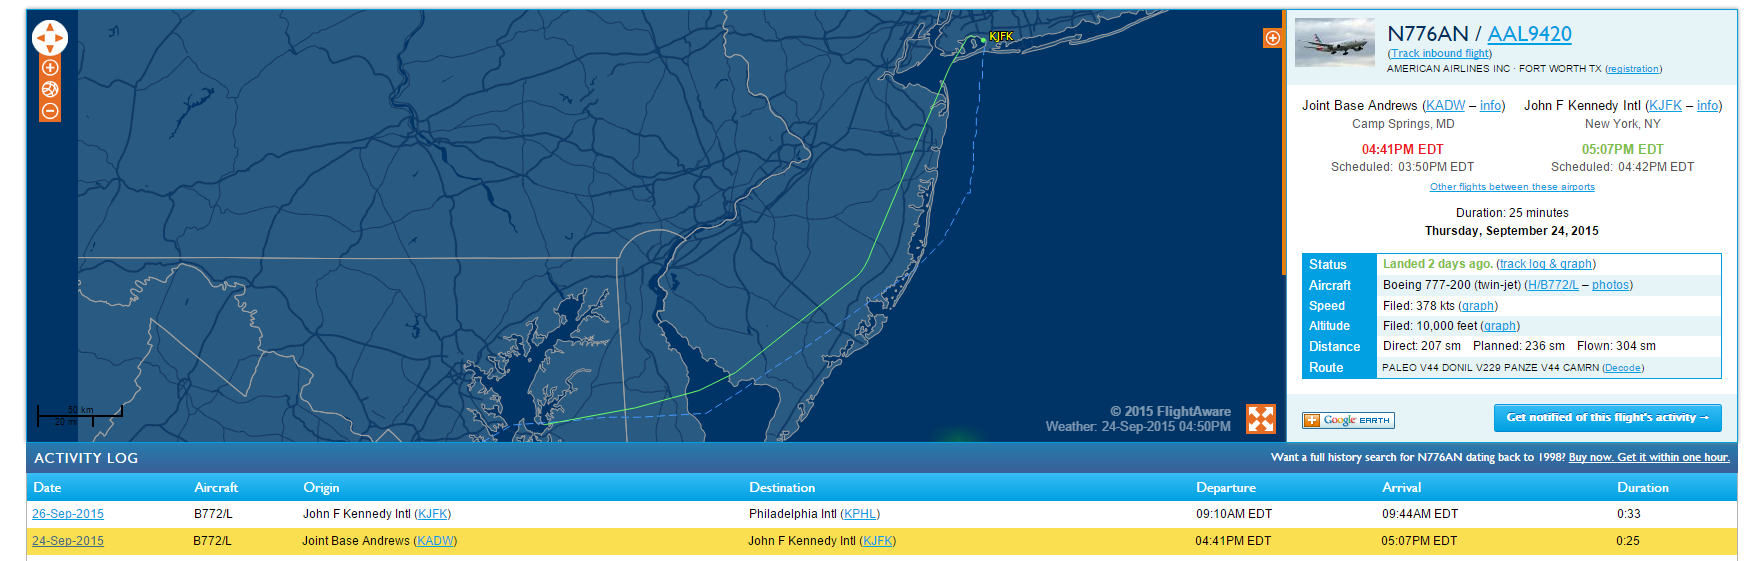 Pope Francis' flight Joint Base Andrews to JFK, courtesy of Flightaware.com